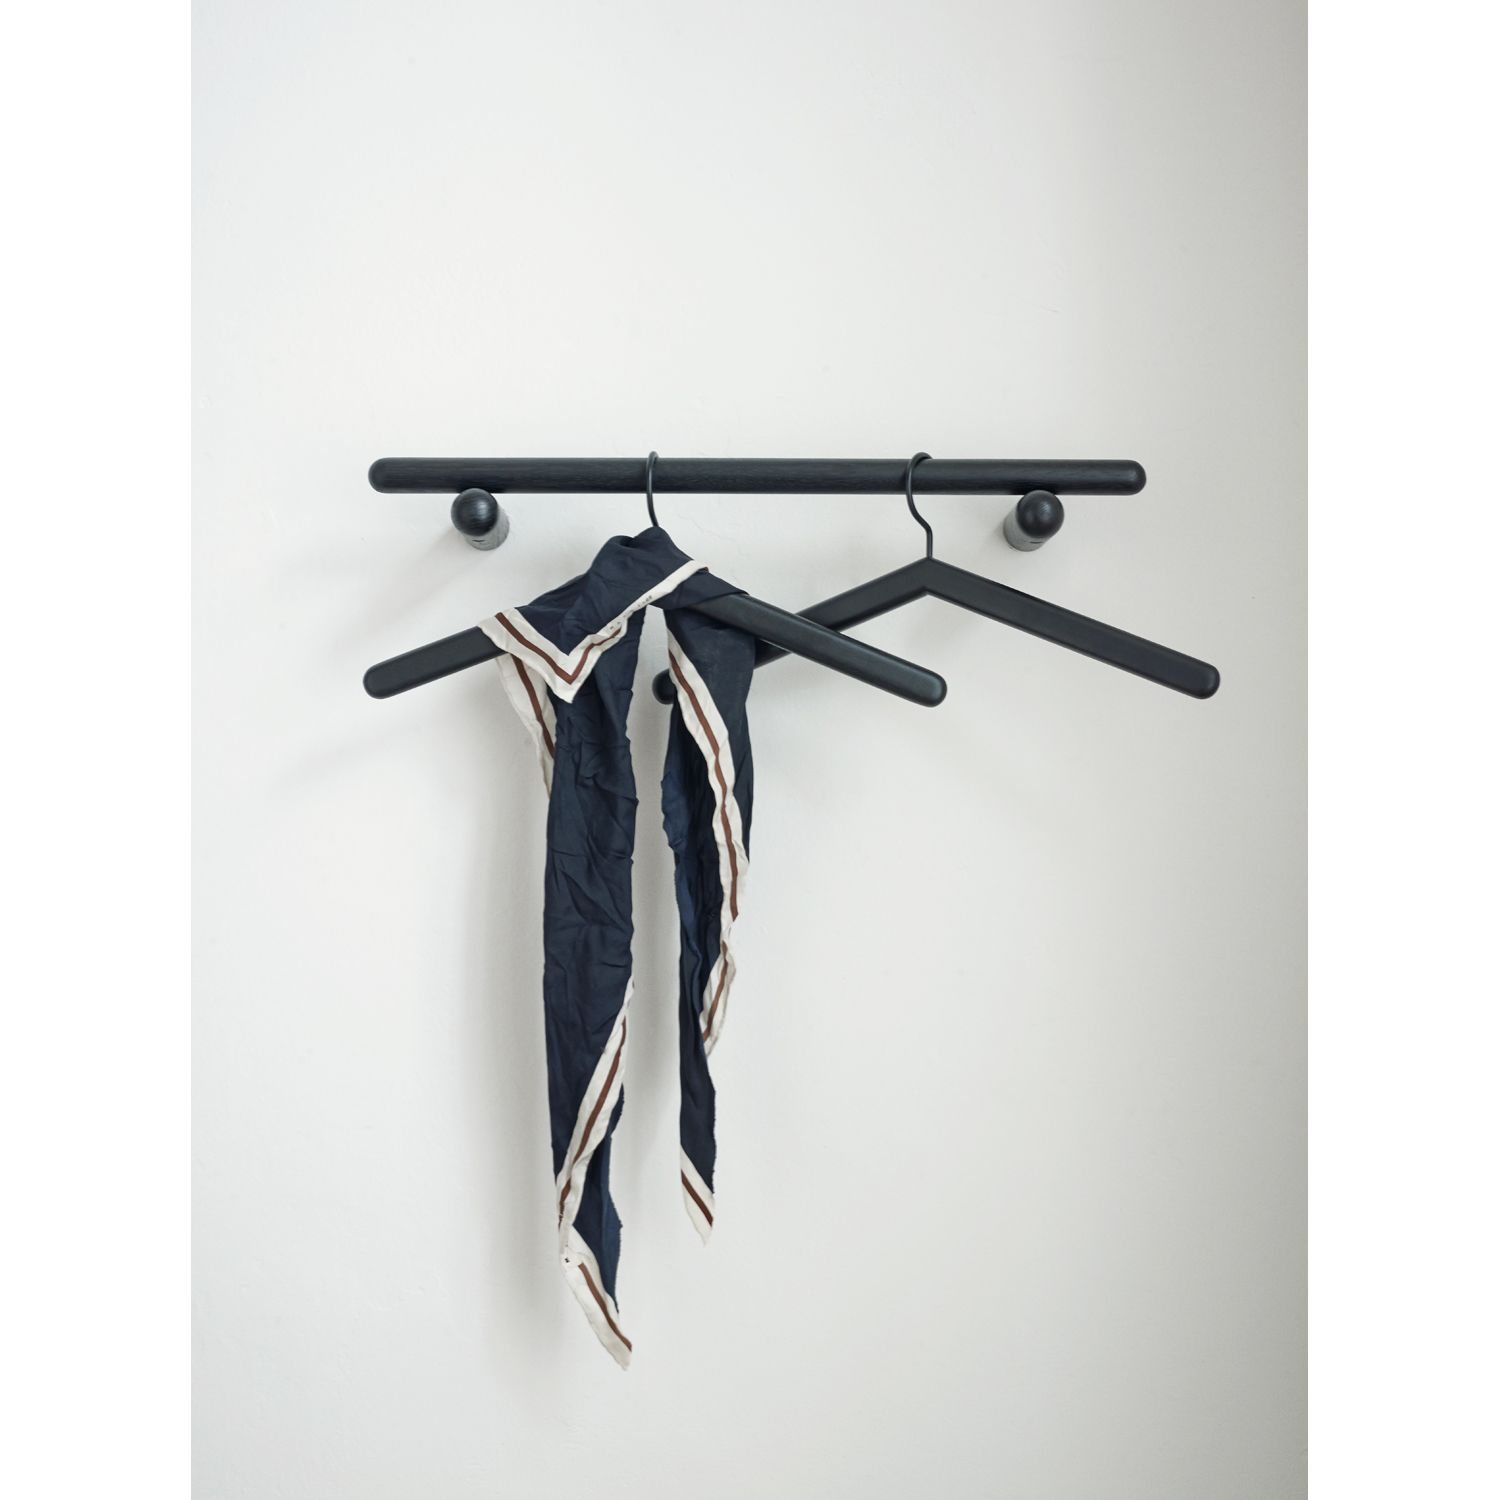 Georg Coat Hanger, Black U2013 Skagerak #interior #design